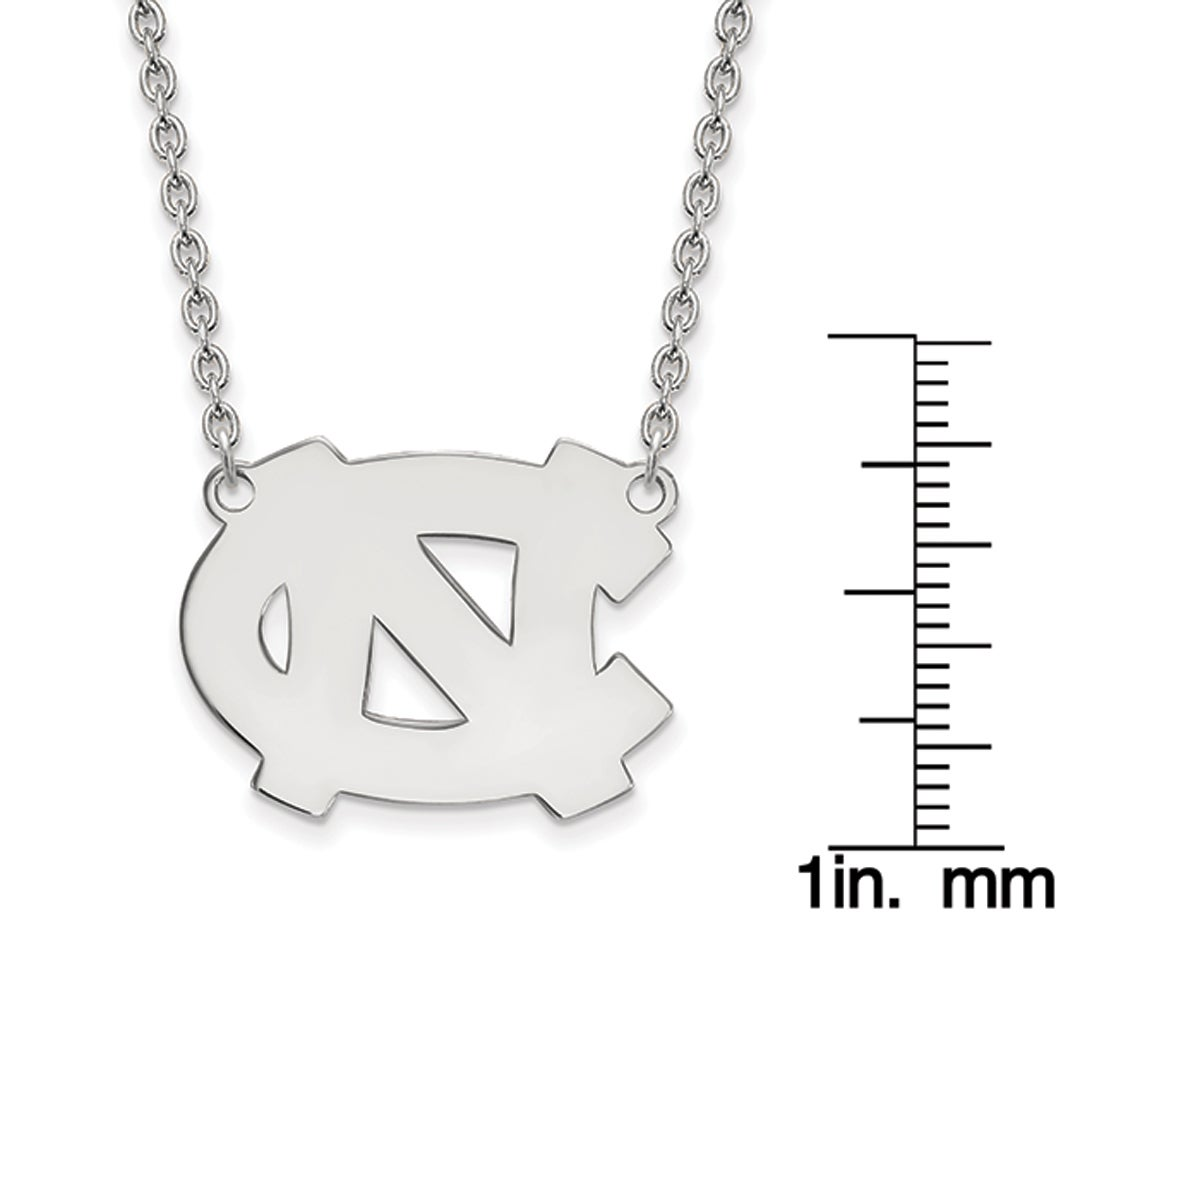 f6a4b277 Shop Versil Sterling Silver LogoArt University of North Carolina Large  Pendant with Neckla - Free Shipping Today - Overstock.com - 16398998